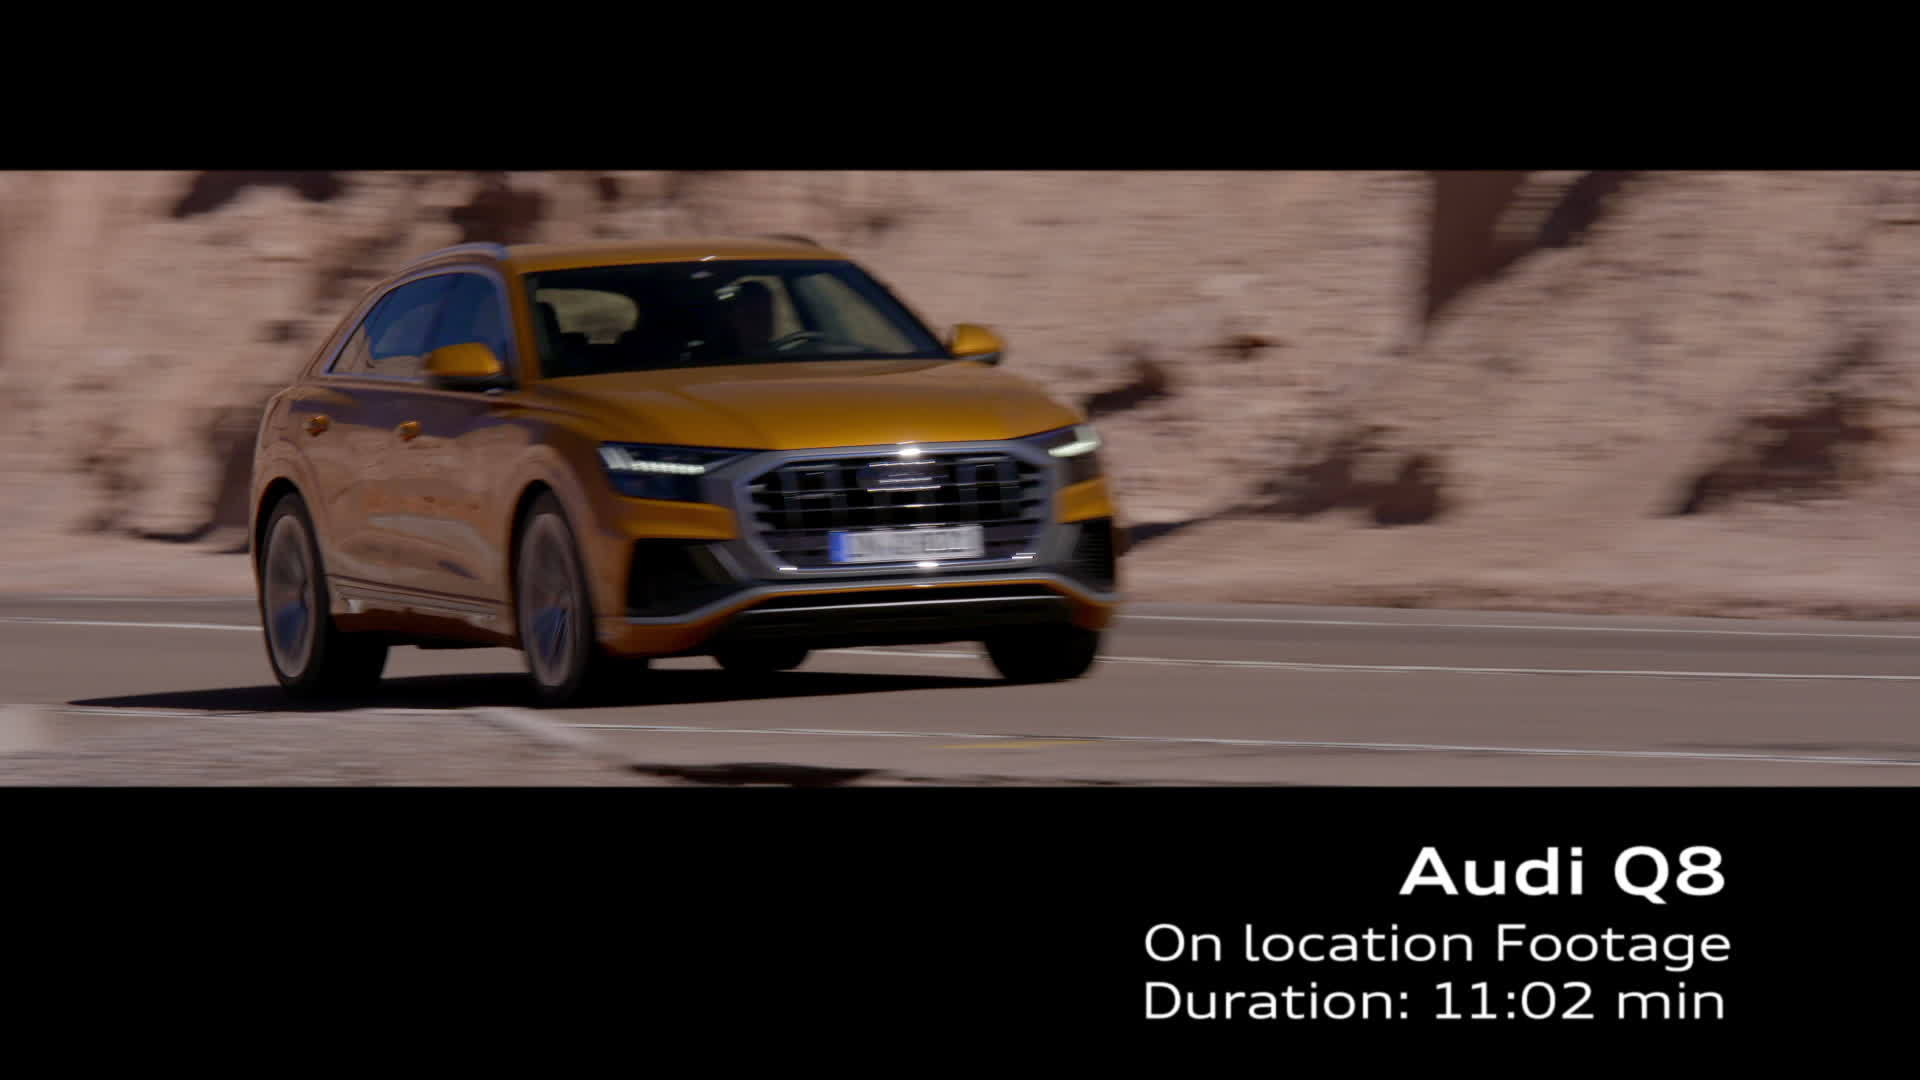 Audi Q8 Footage Chile Drachenorange